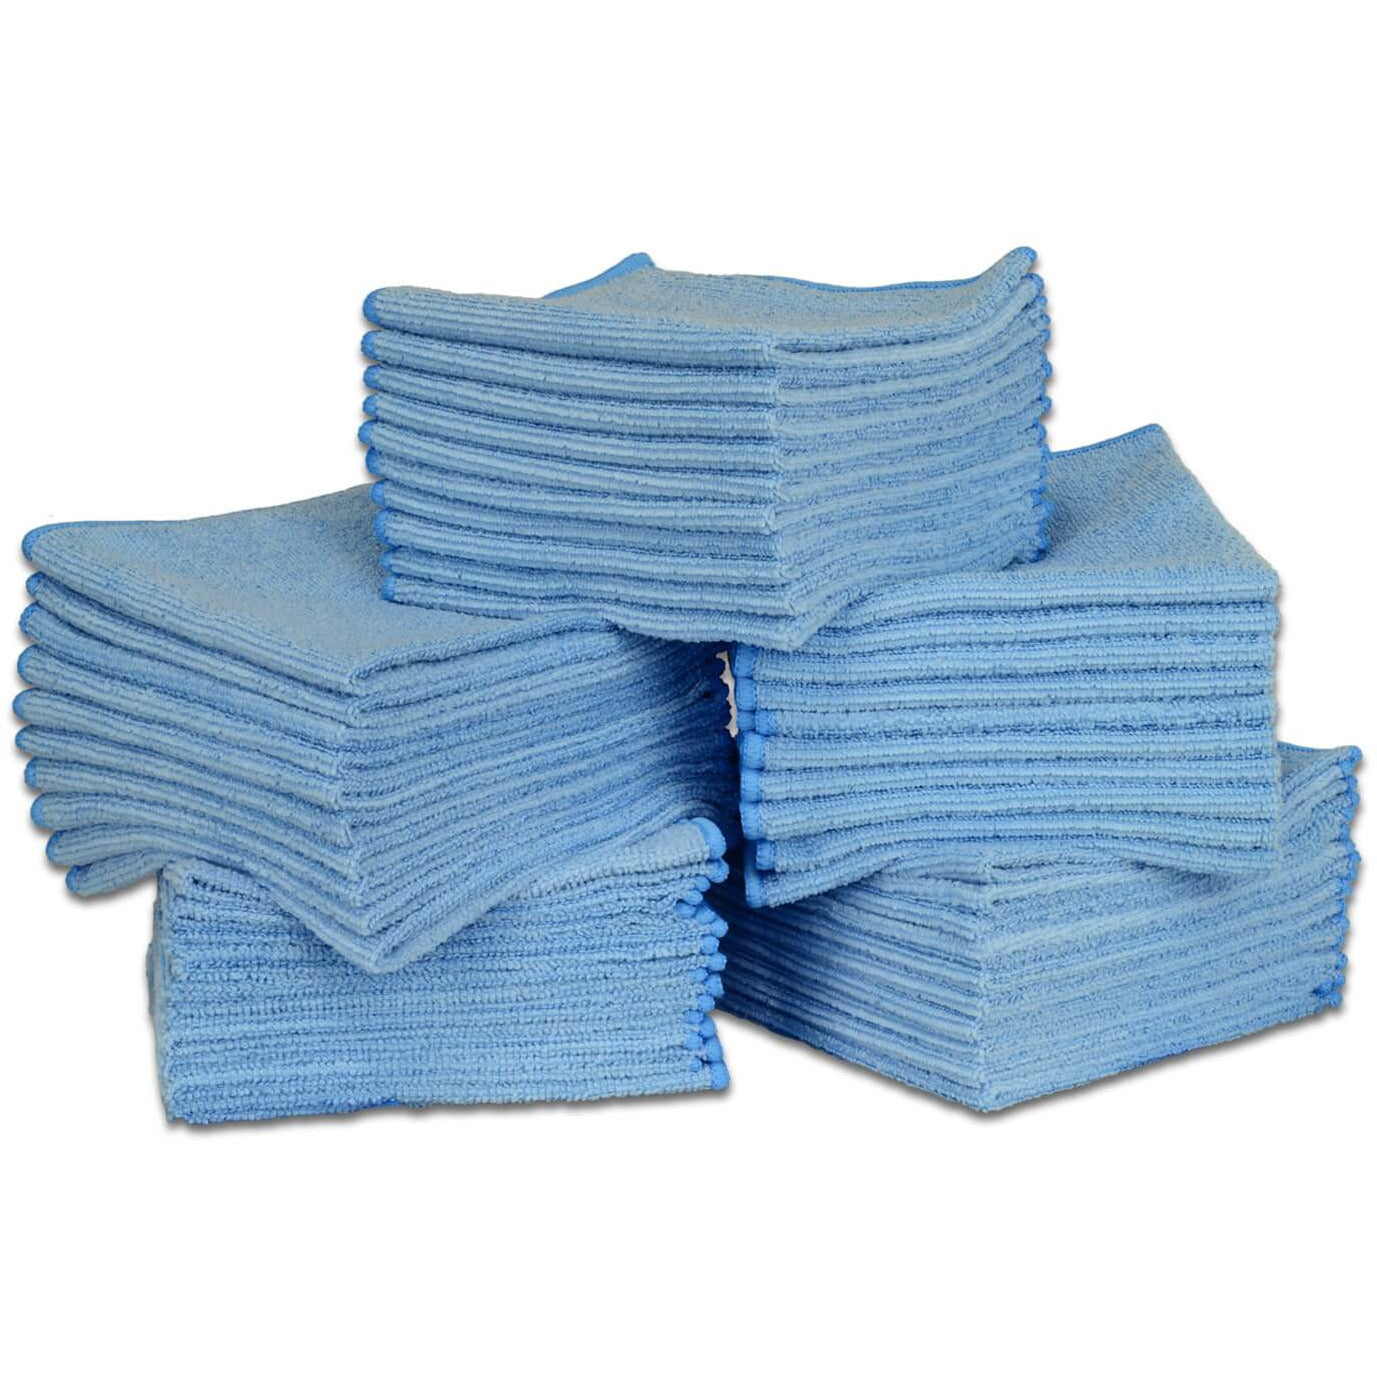 "12"" x 12"" Economy All Purpose Microfiber Towels - 50 Pack - Everything But The Plant"